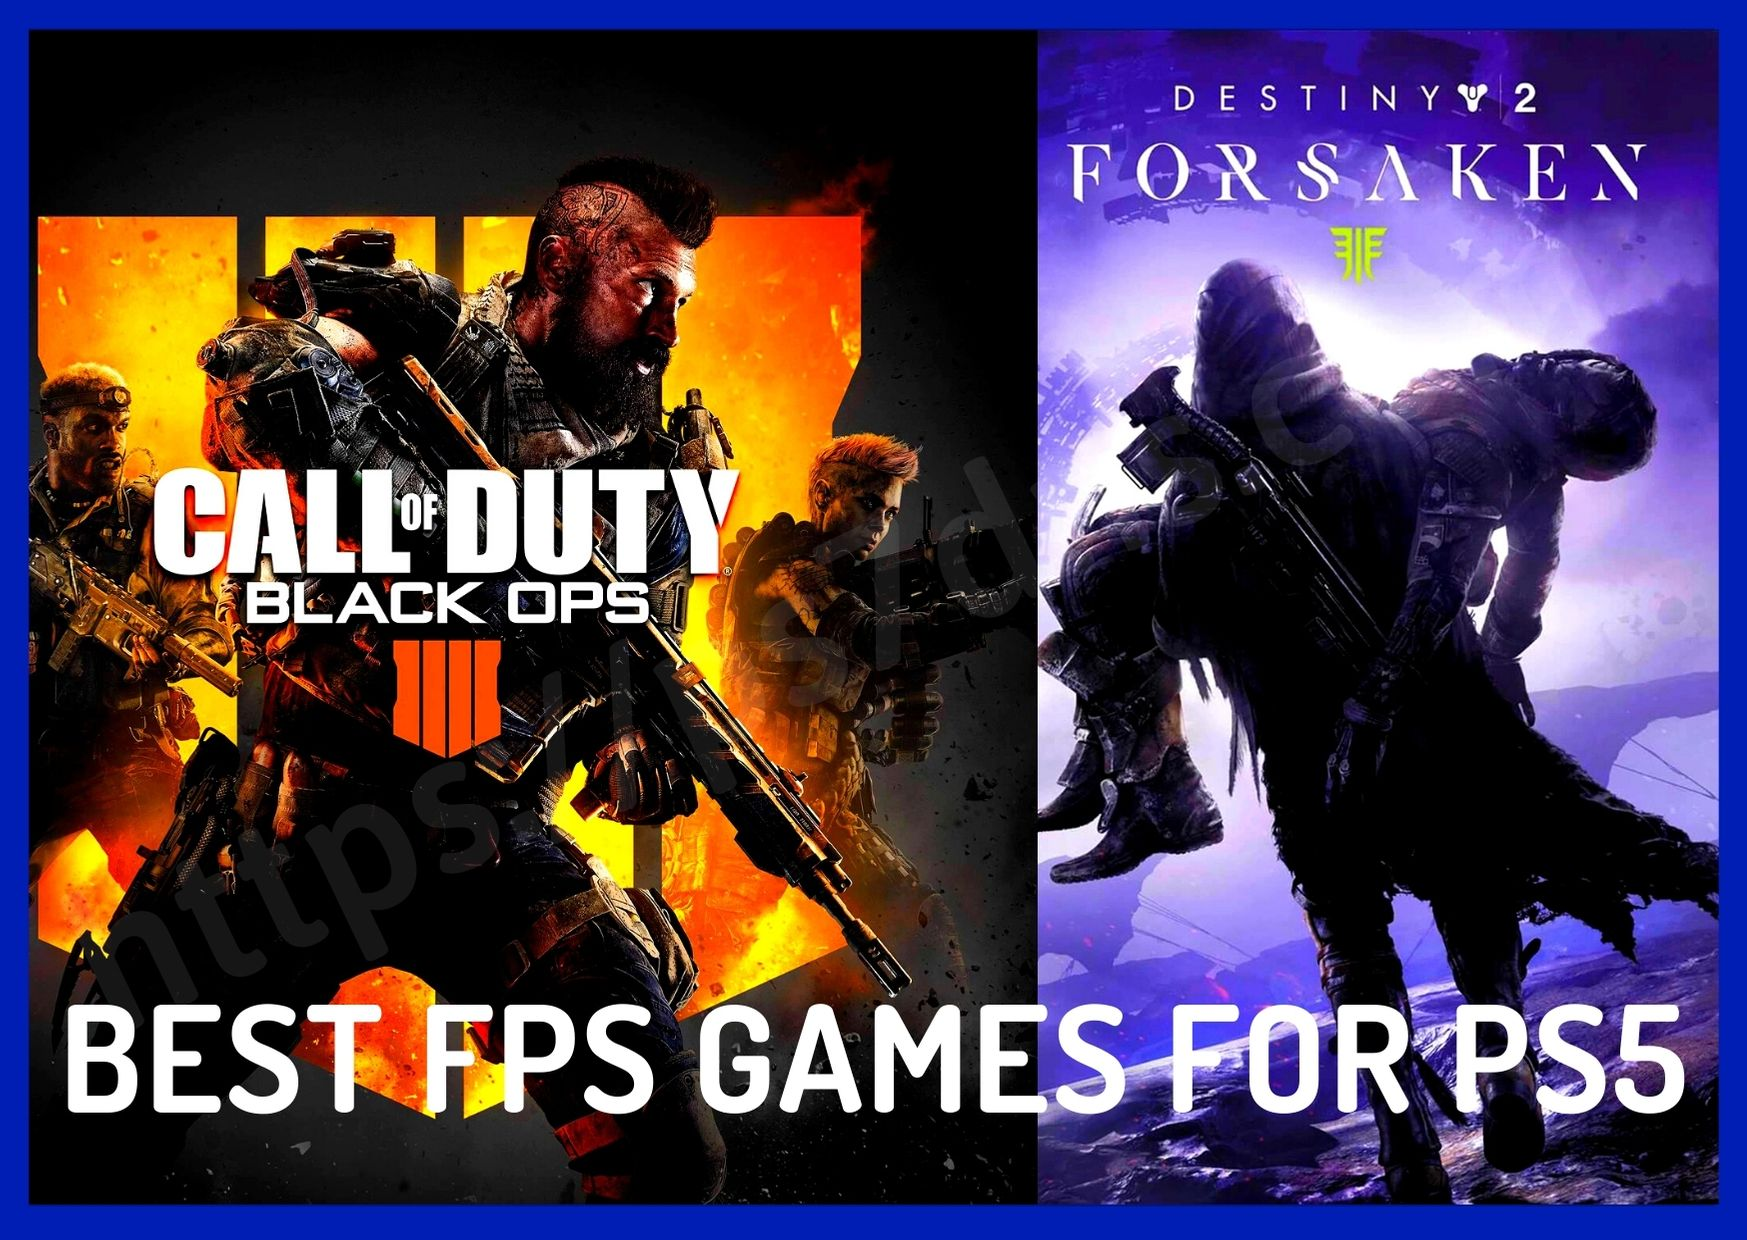 Best FPS Games For PS5